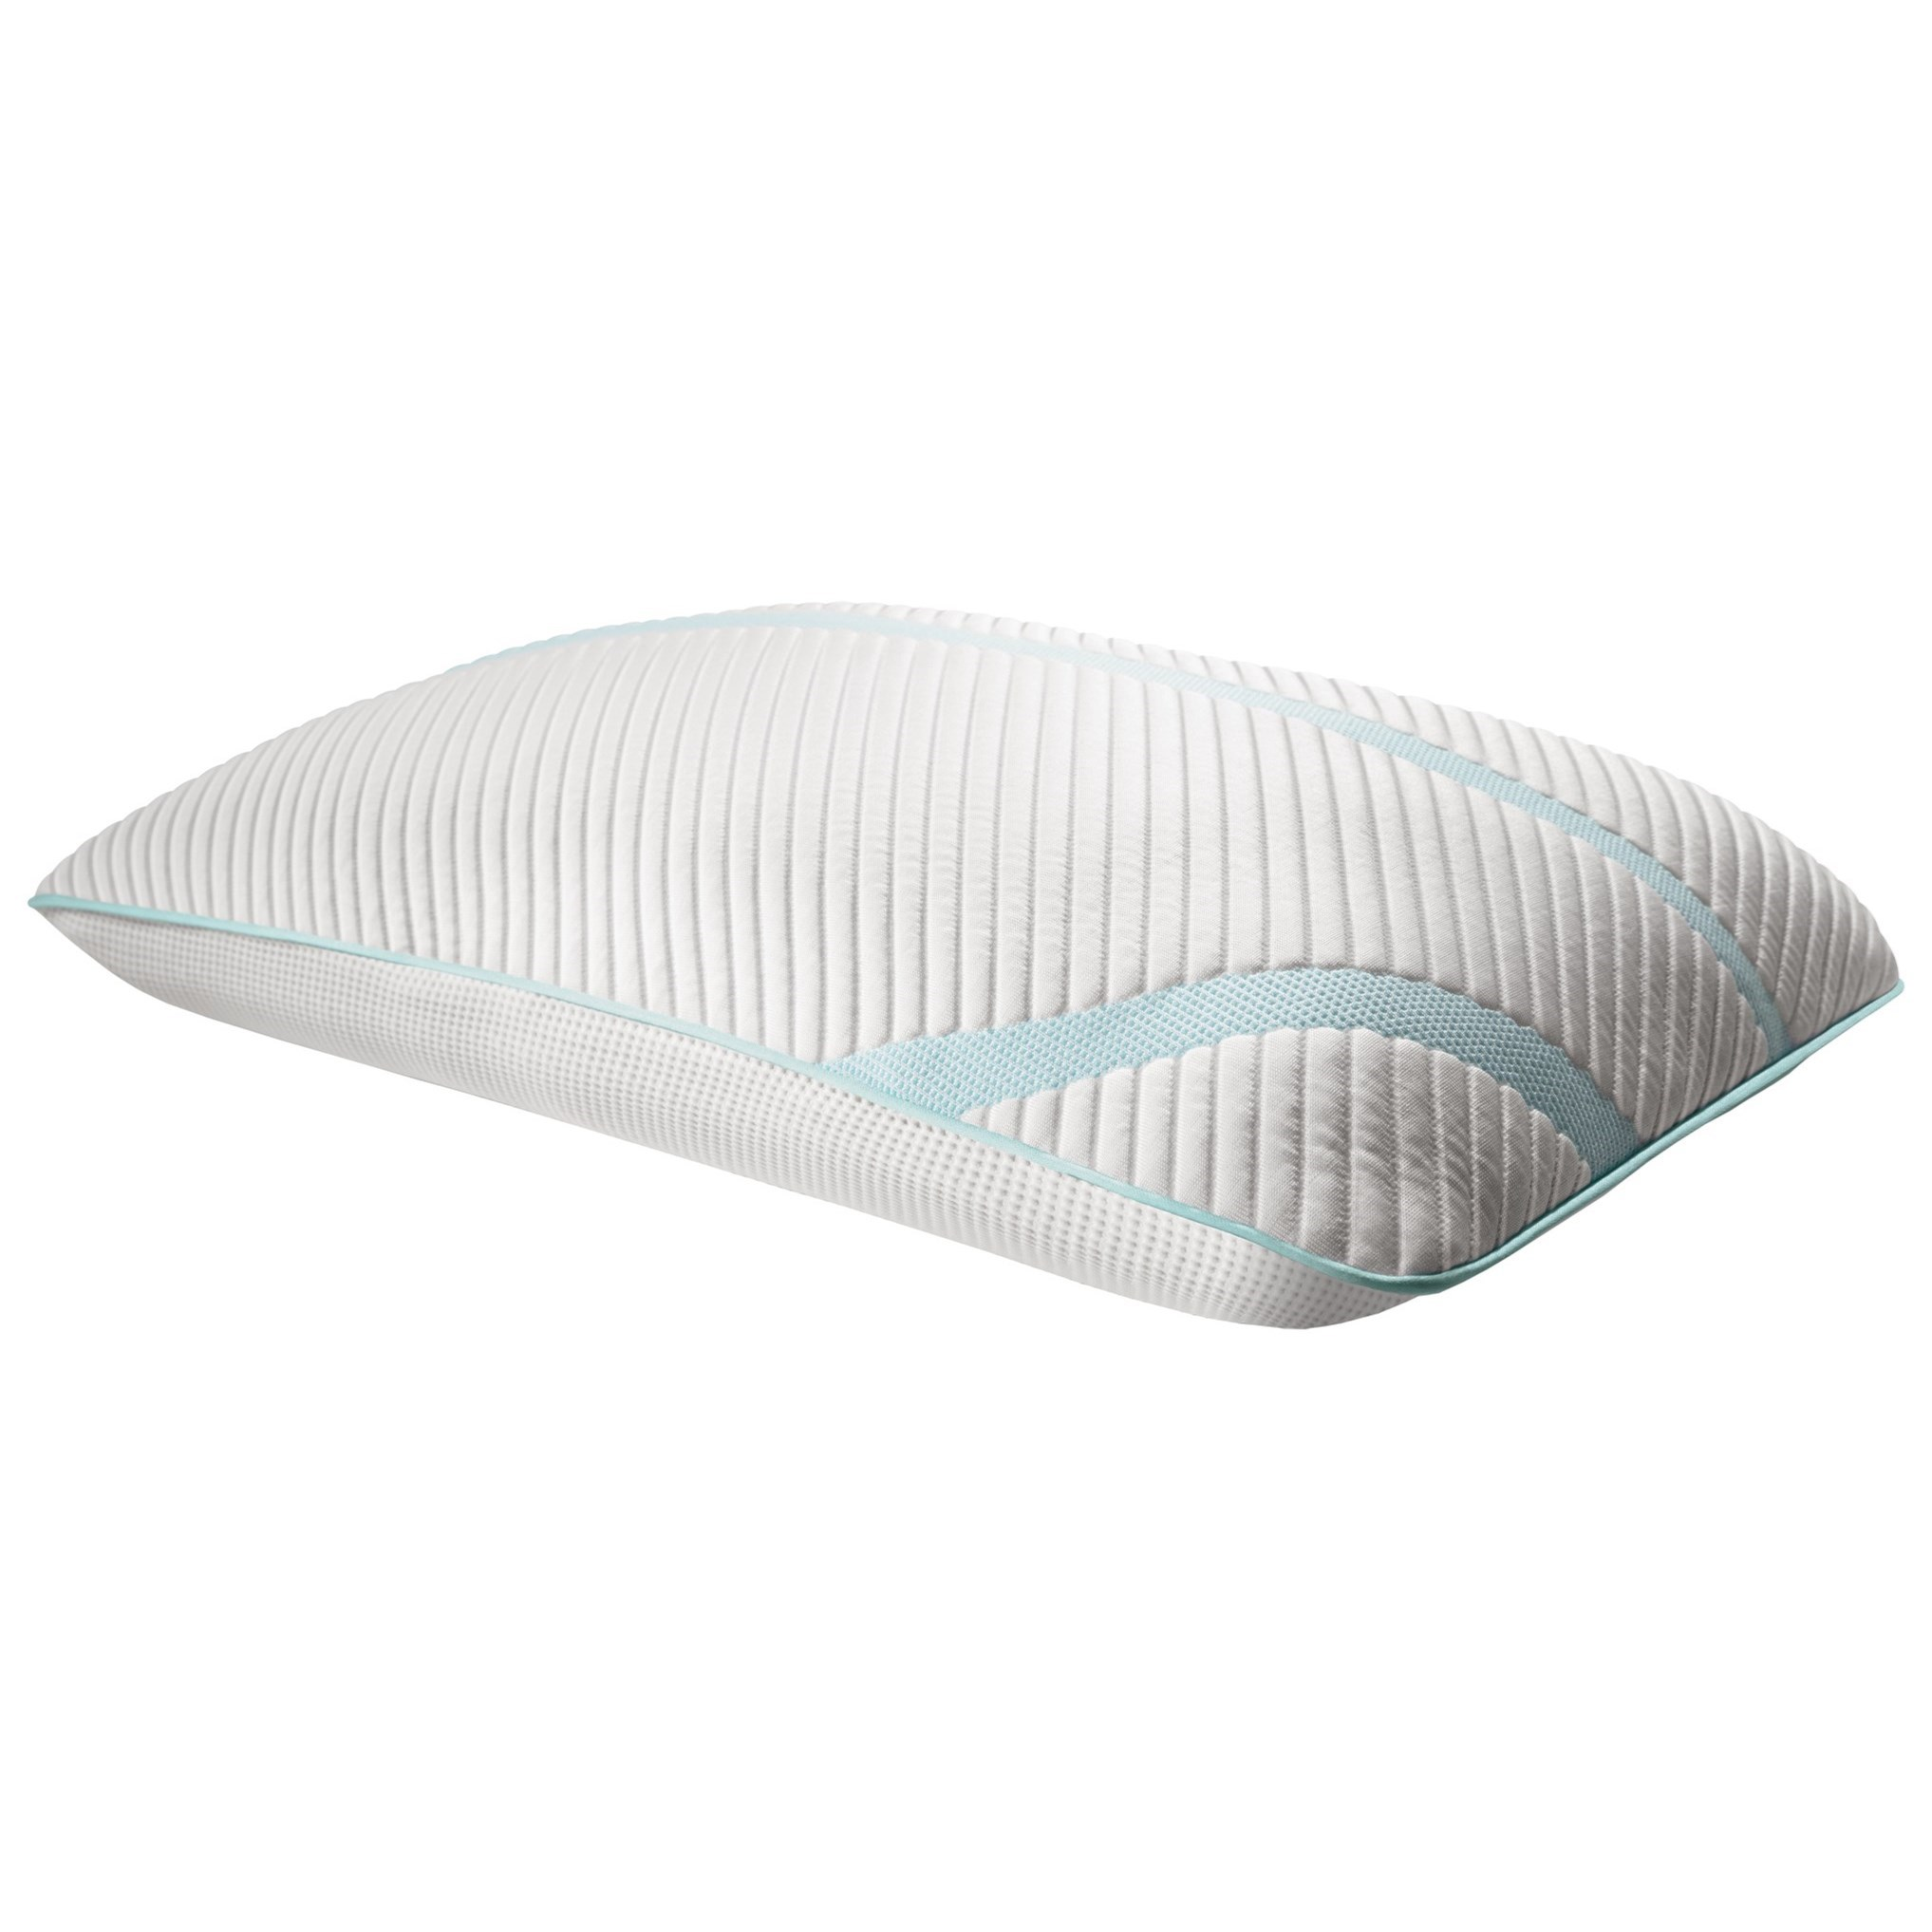 TEMPUR-Adapt Pro-Lo King TEMPUR-Adapt Pro-Lo + Cooling Pillow at Johnny Janosik